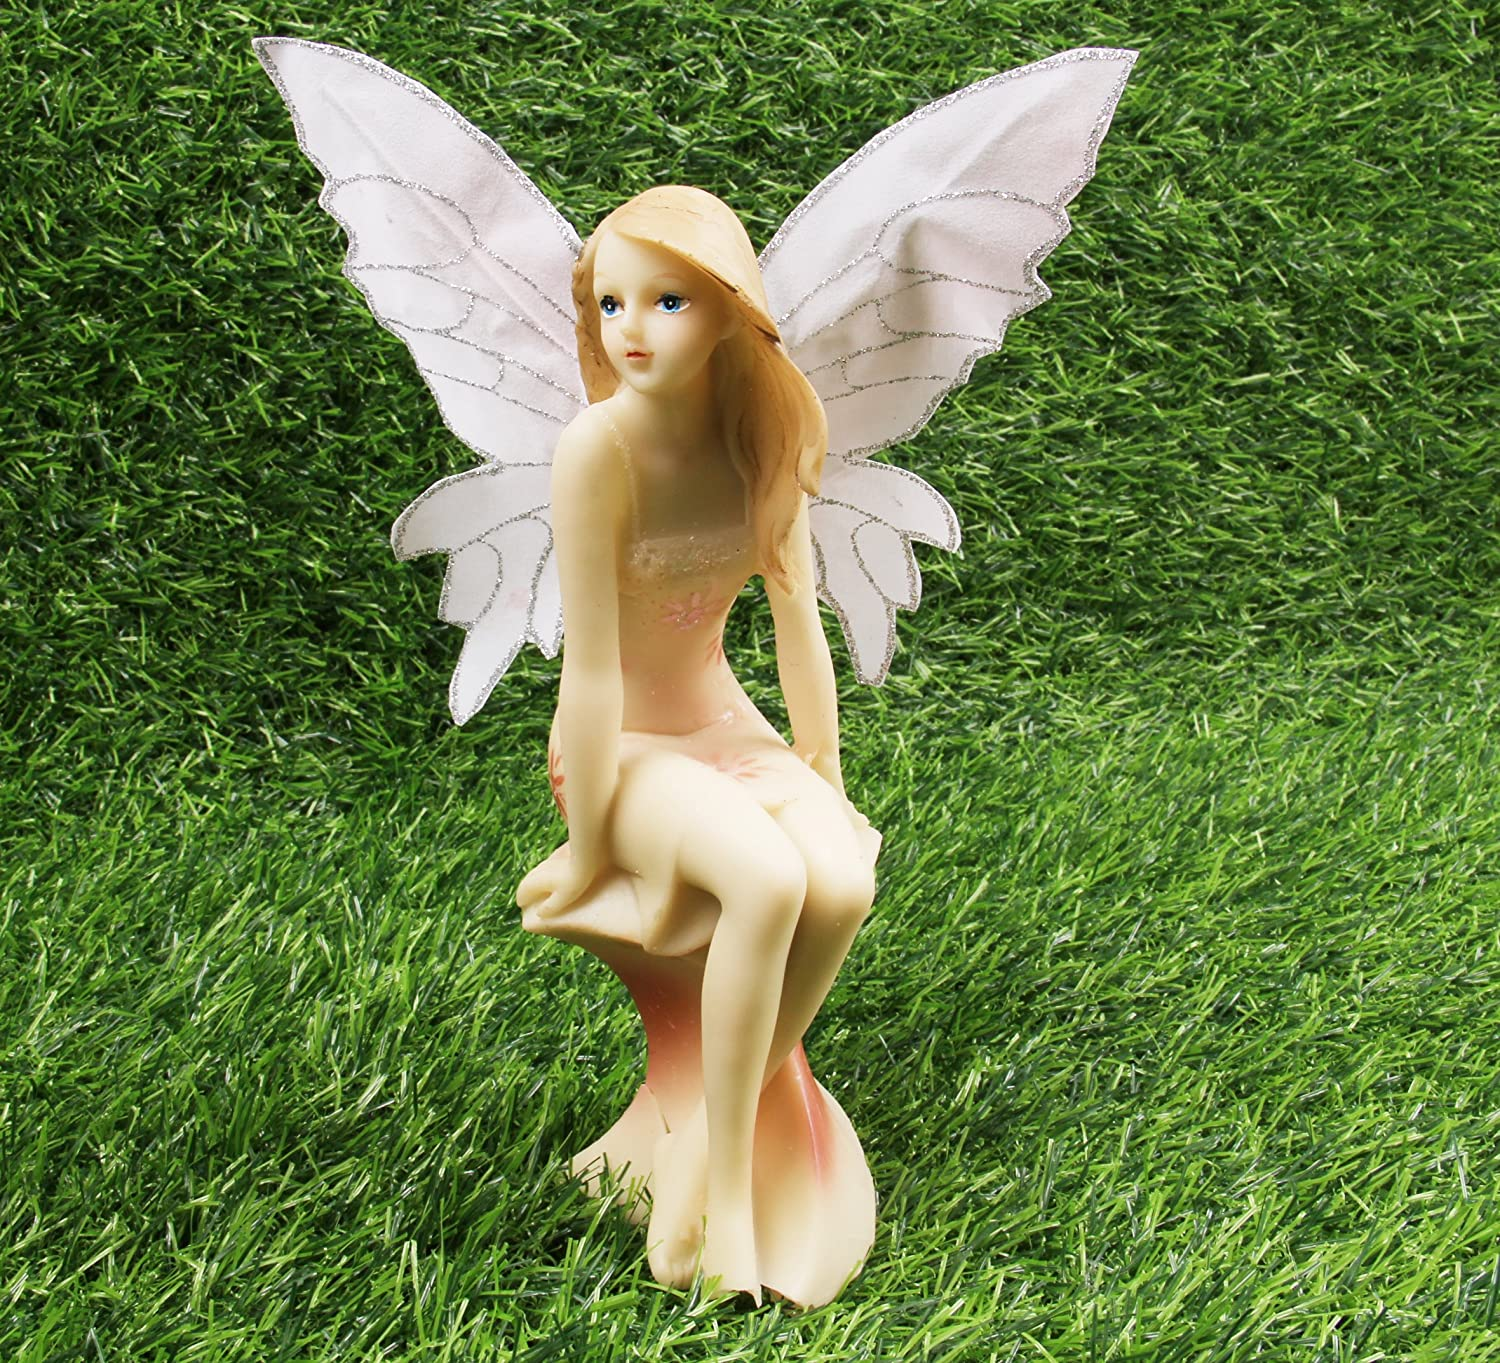 Merveilleux Amazon.com : Fairy Garden Fairy   Garden Girl For Outdoor Or House Decor,  Hand Painted Resin Figurines, For Garden Indoor Decor Gift Style B : Garden  U0026 ...